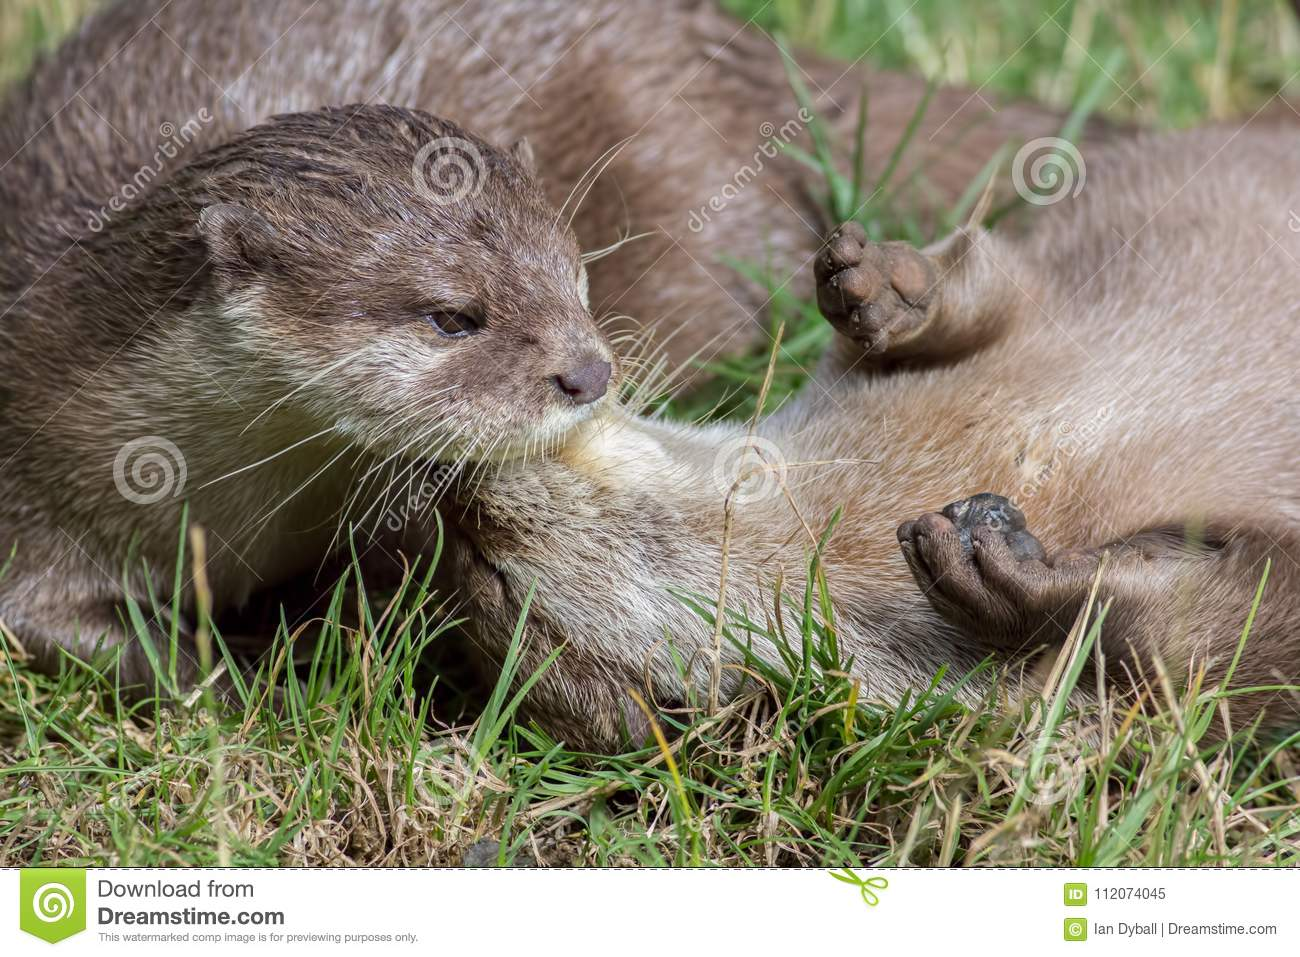 Wild otters playing. Affectionate river animal pair social bonding.